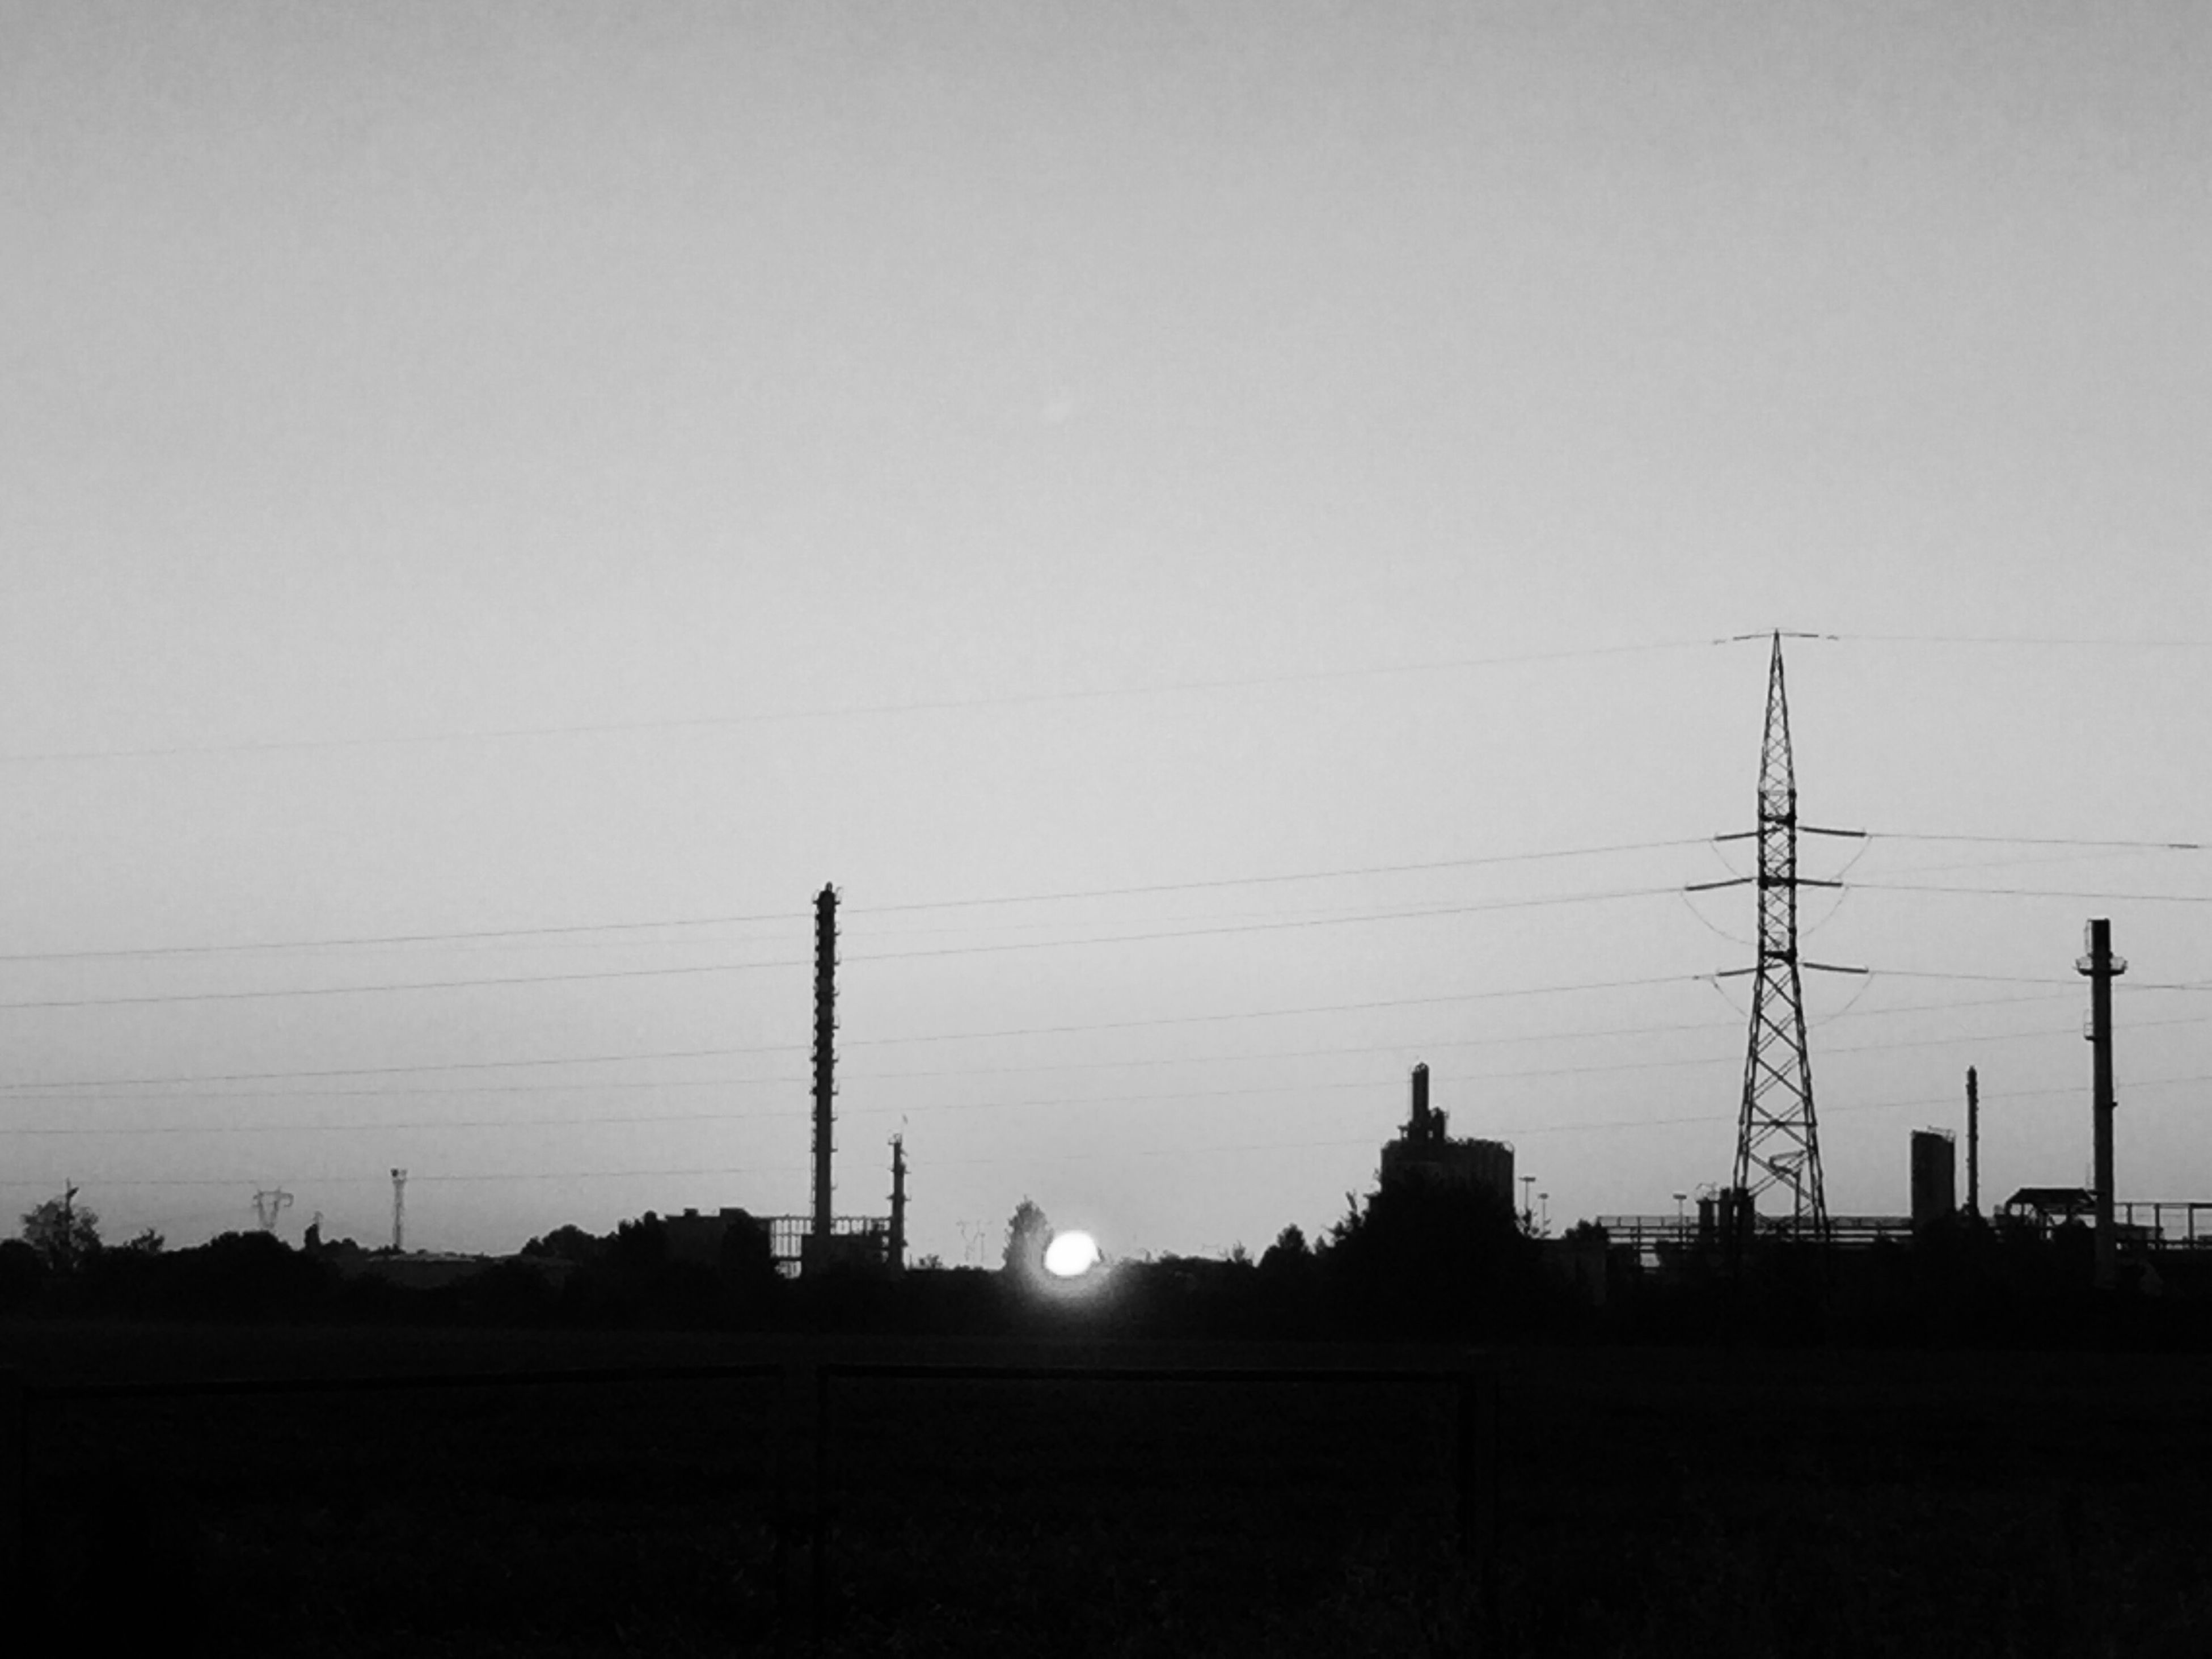 silhouette, electricity pylon, power line, clear sky, sun, electricity, power supply, cable, sky, outline, tranquil scene, tall, tranquility, outdoors, calm, electricity tower, no people, scenics